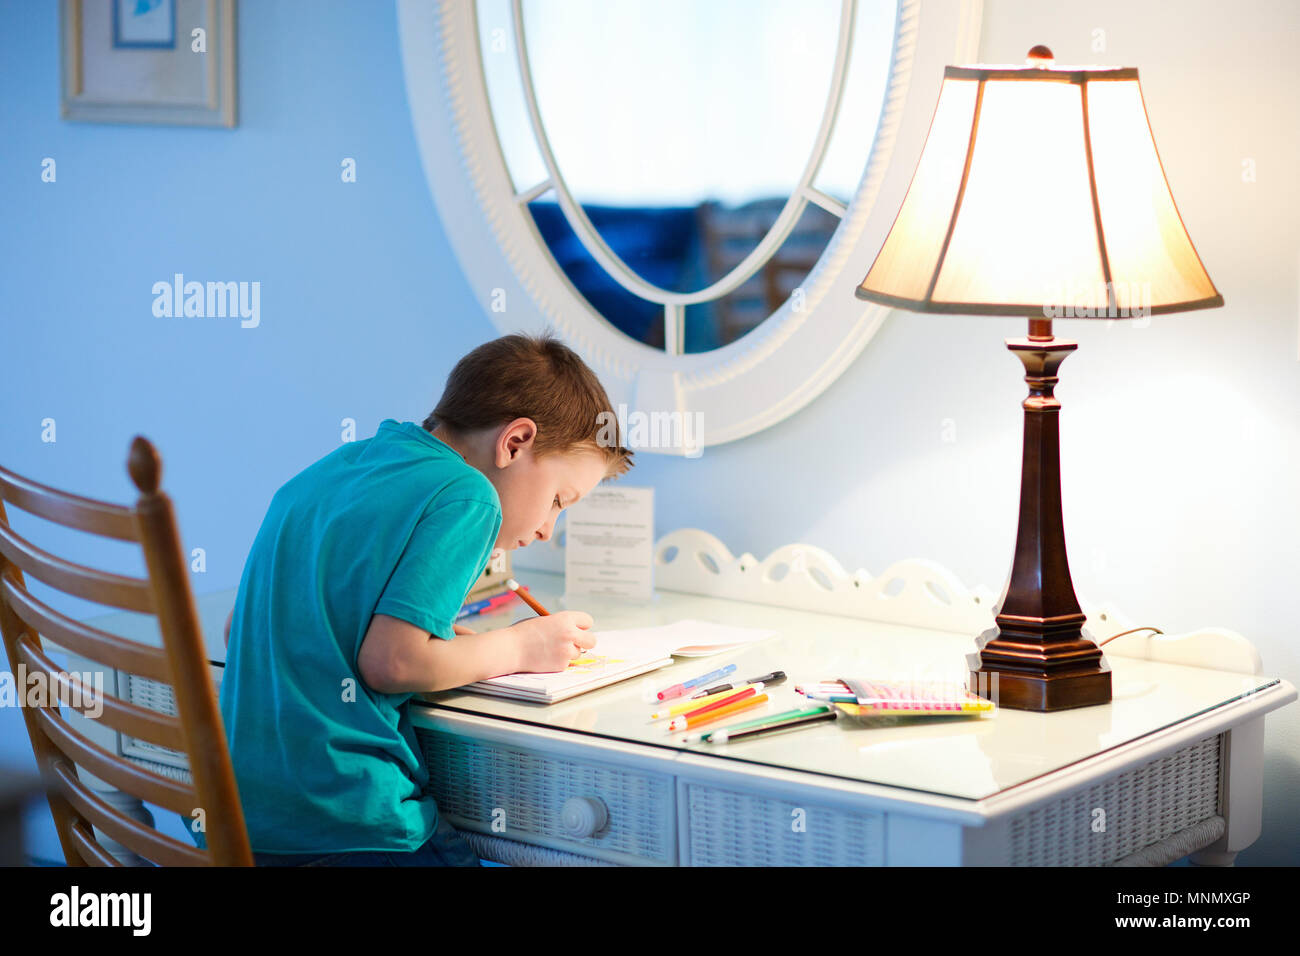 Portrait of cute happy schoolkid at home drawing or writing - Stock Image